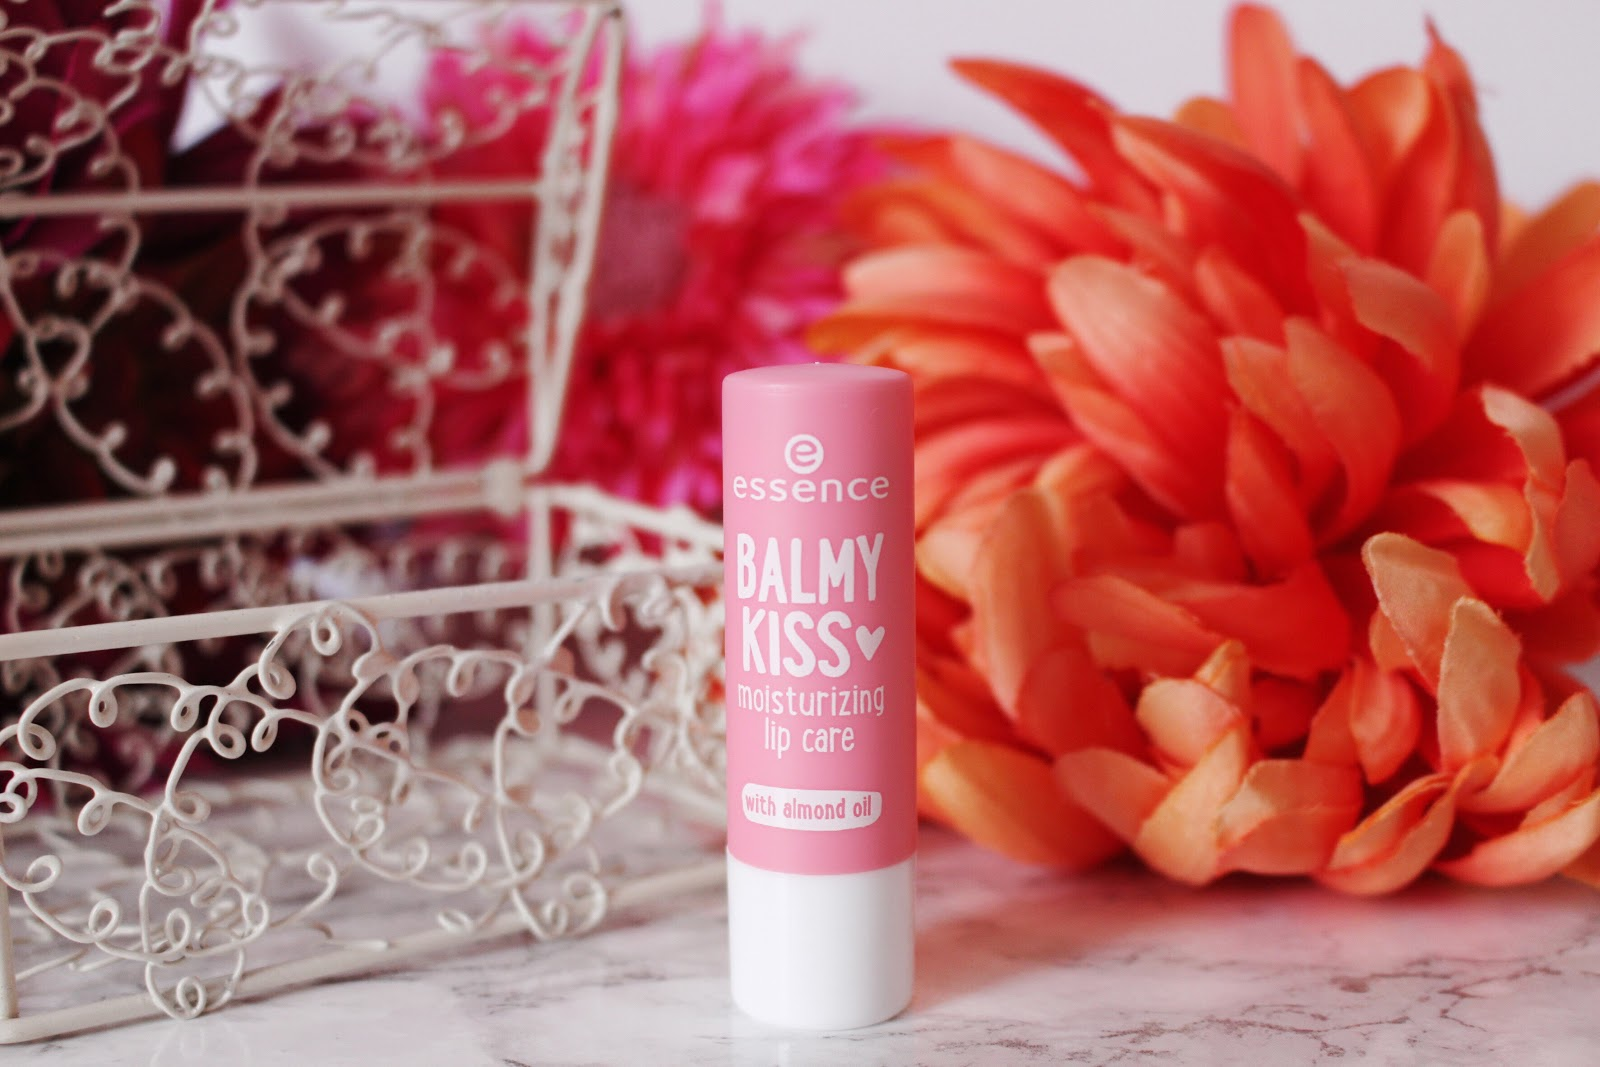 Essence Balmy Kiss Lip Care | Review